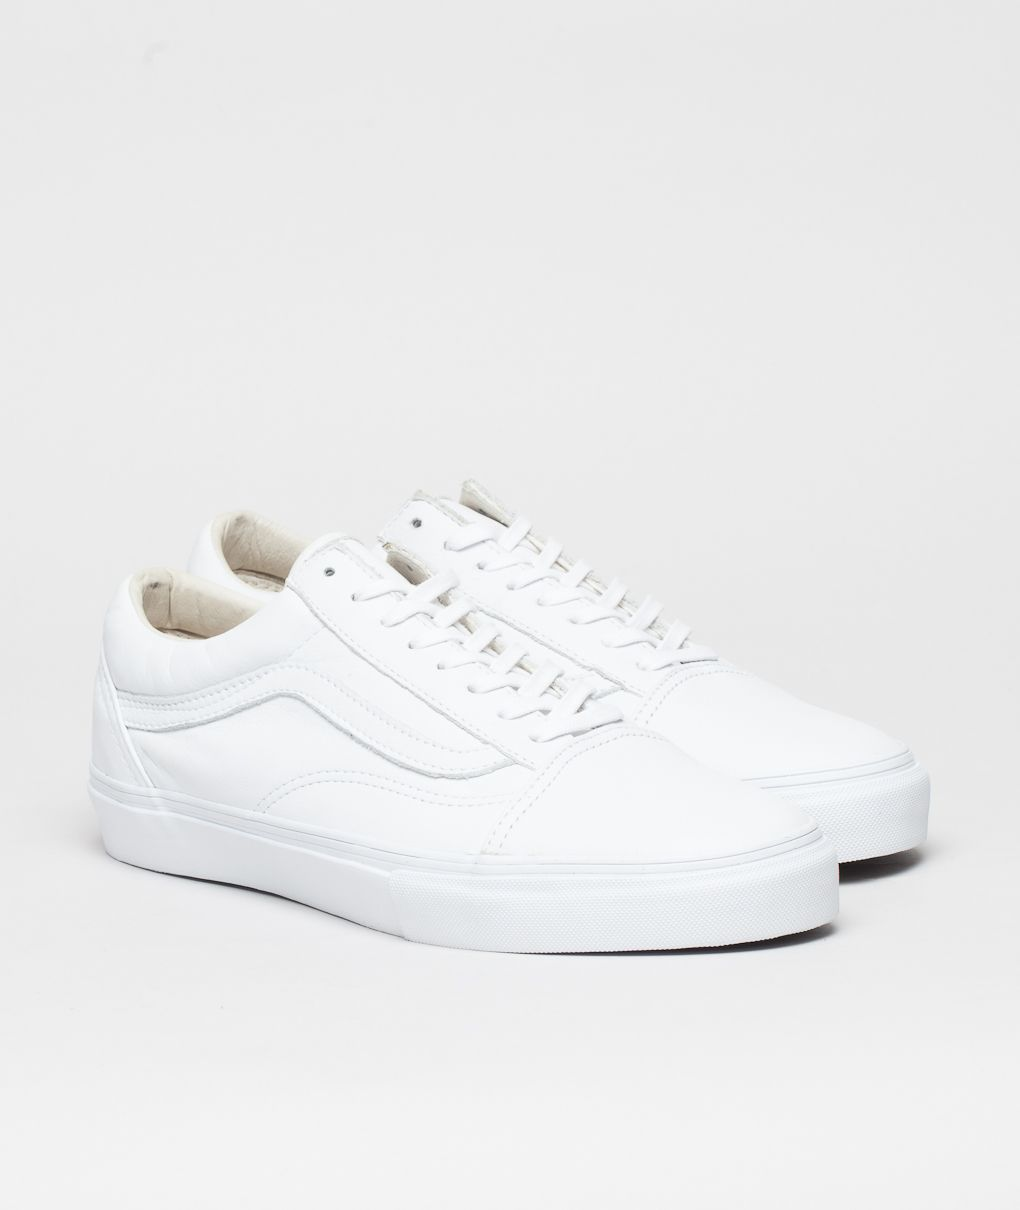 vans old skool white  9c6e027ac94